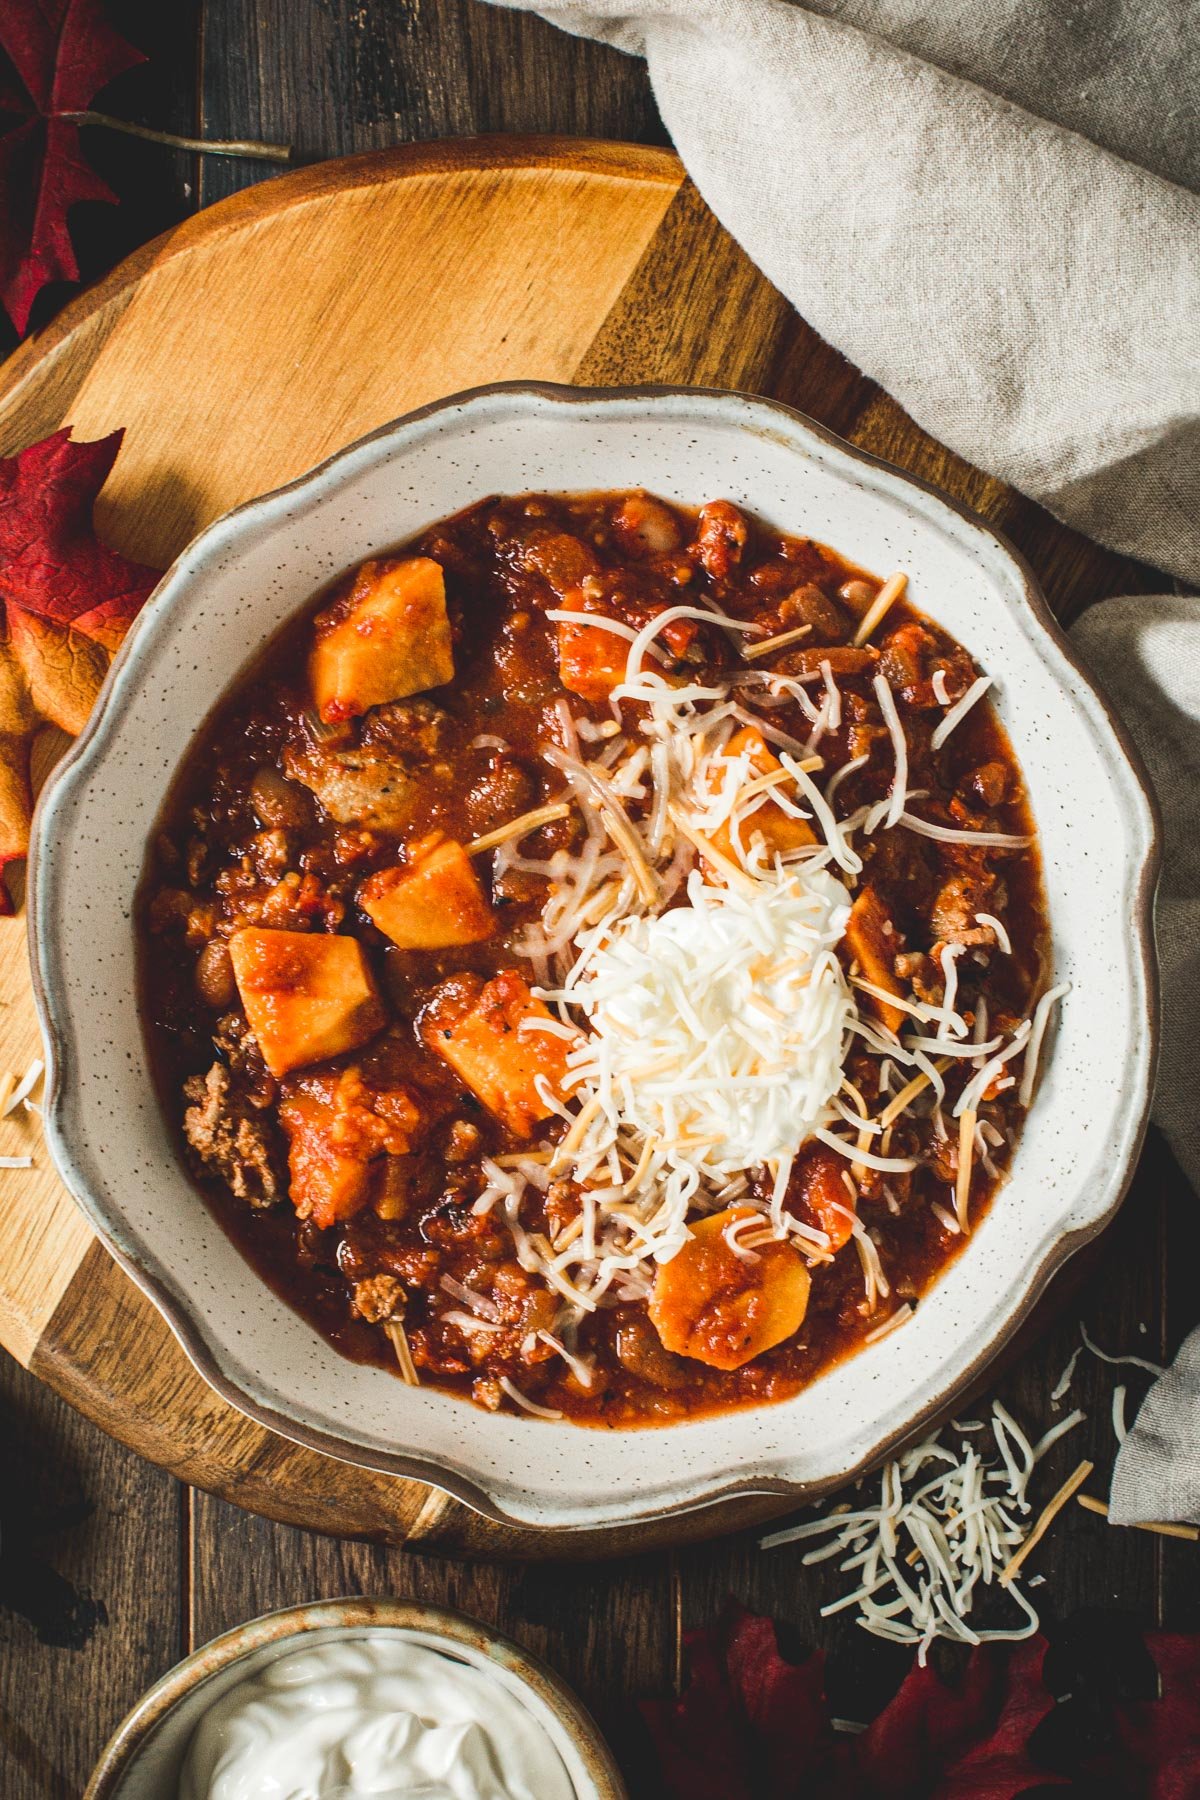 Crockpot sweet potato turkey chili topped with sour cream and shredded cheese.